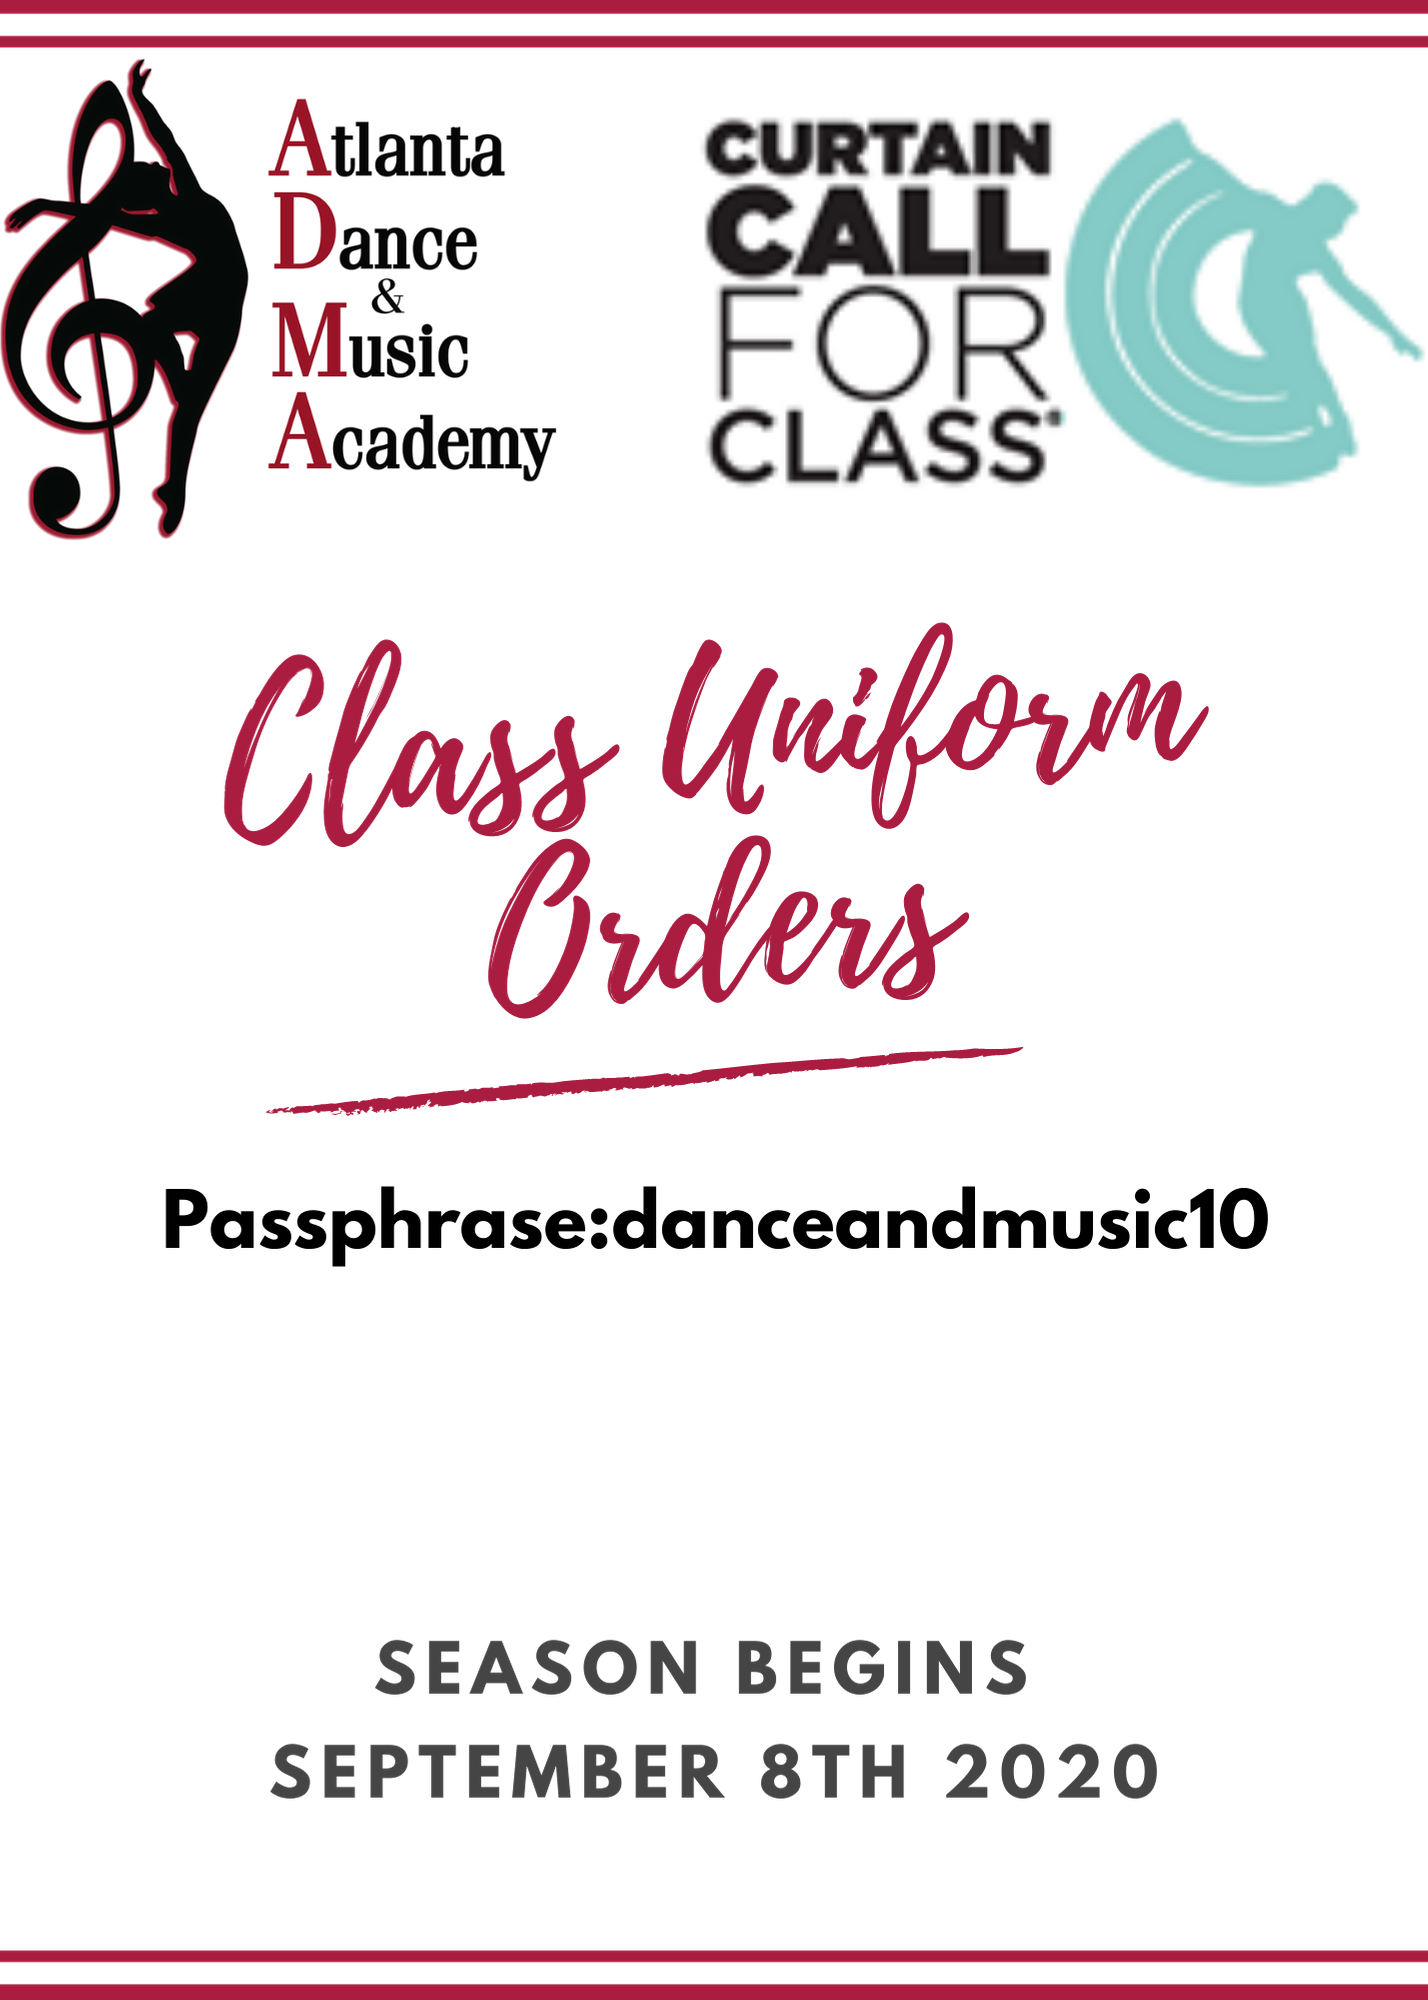 Curtain Call for Class Order